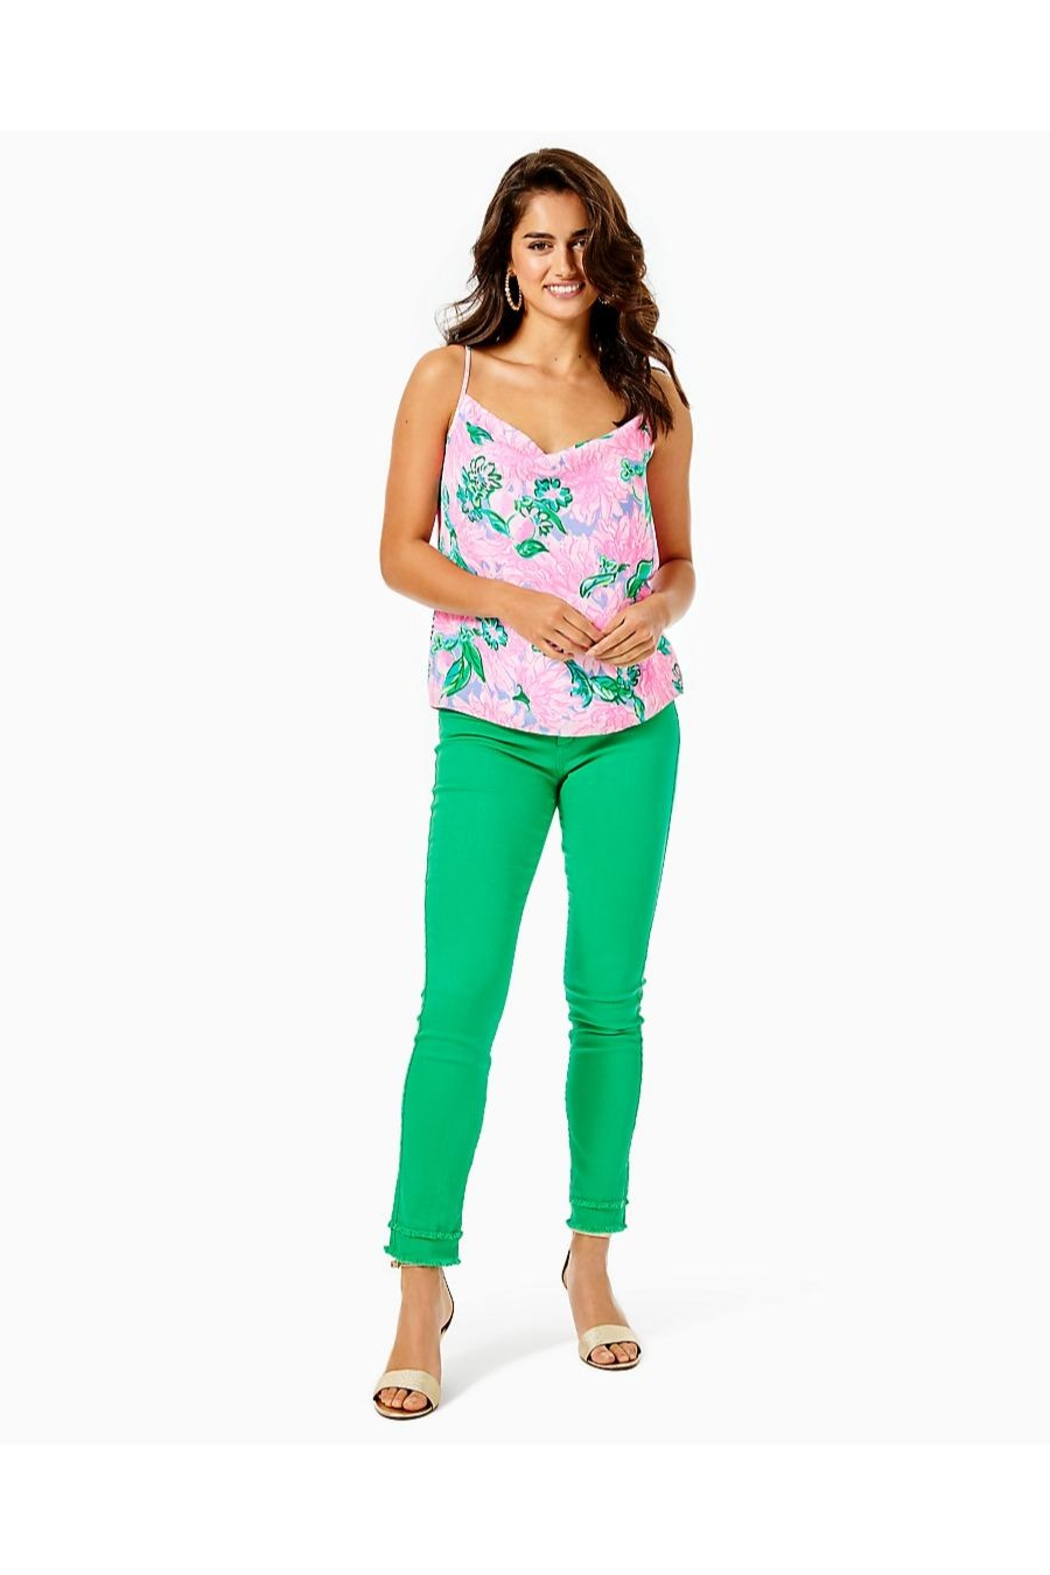 Lilly Pulitzer South Ocean Skinny-Jean - Back Cropped Image